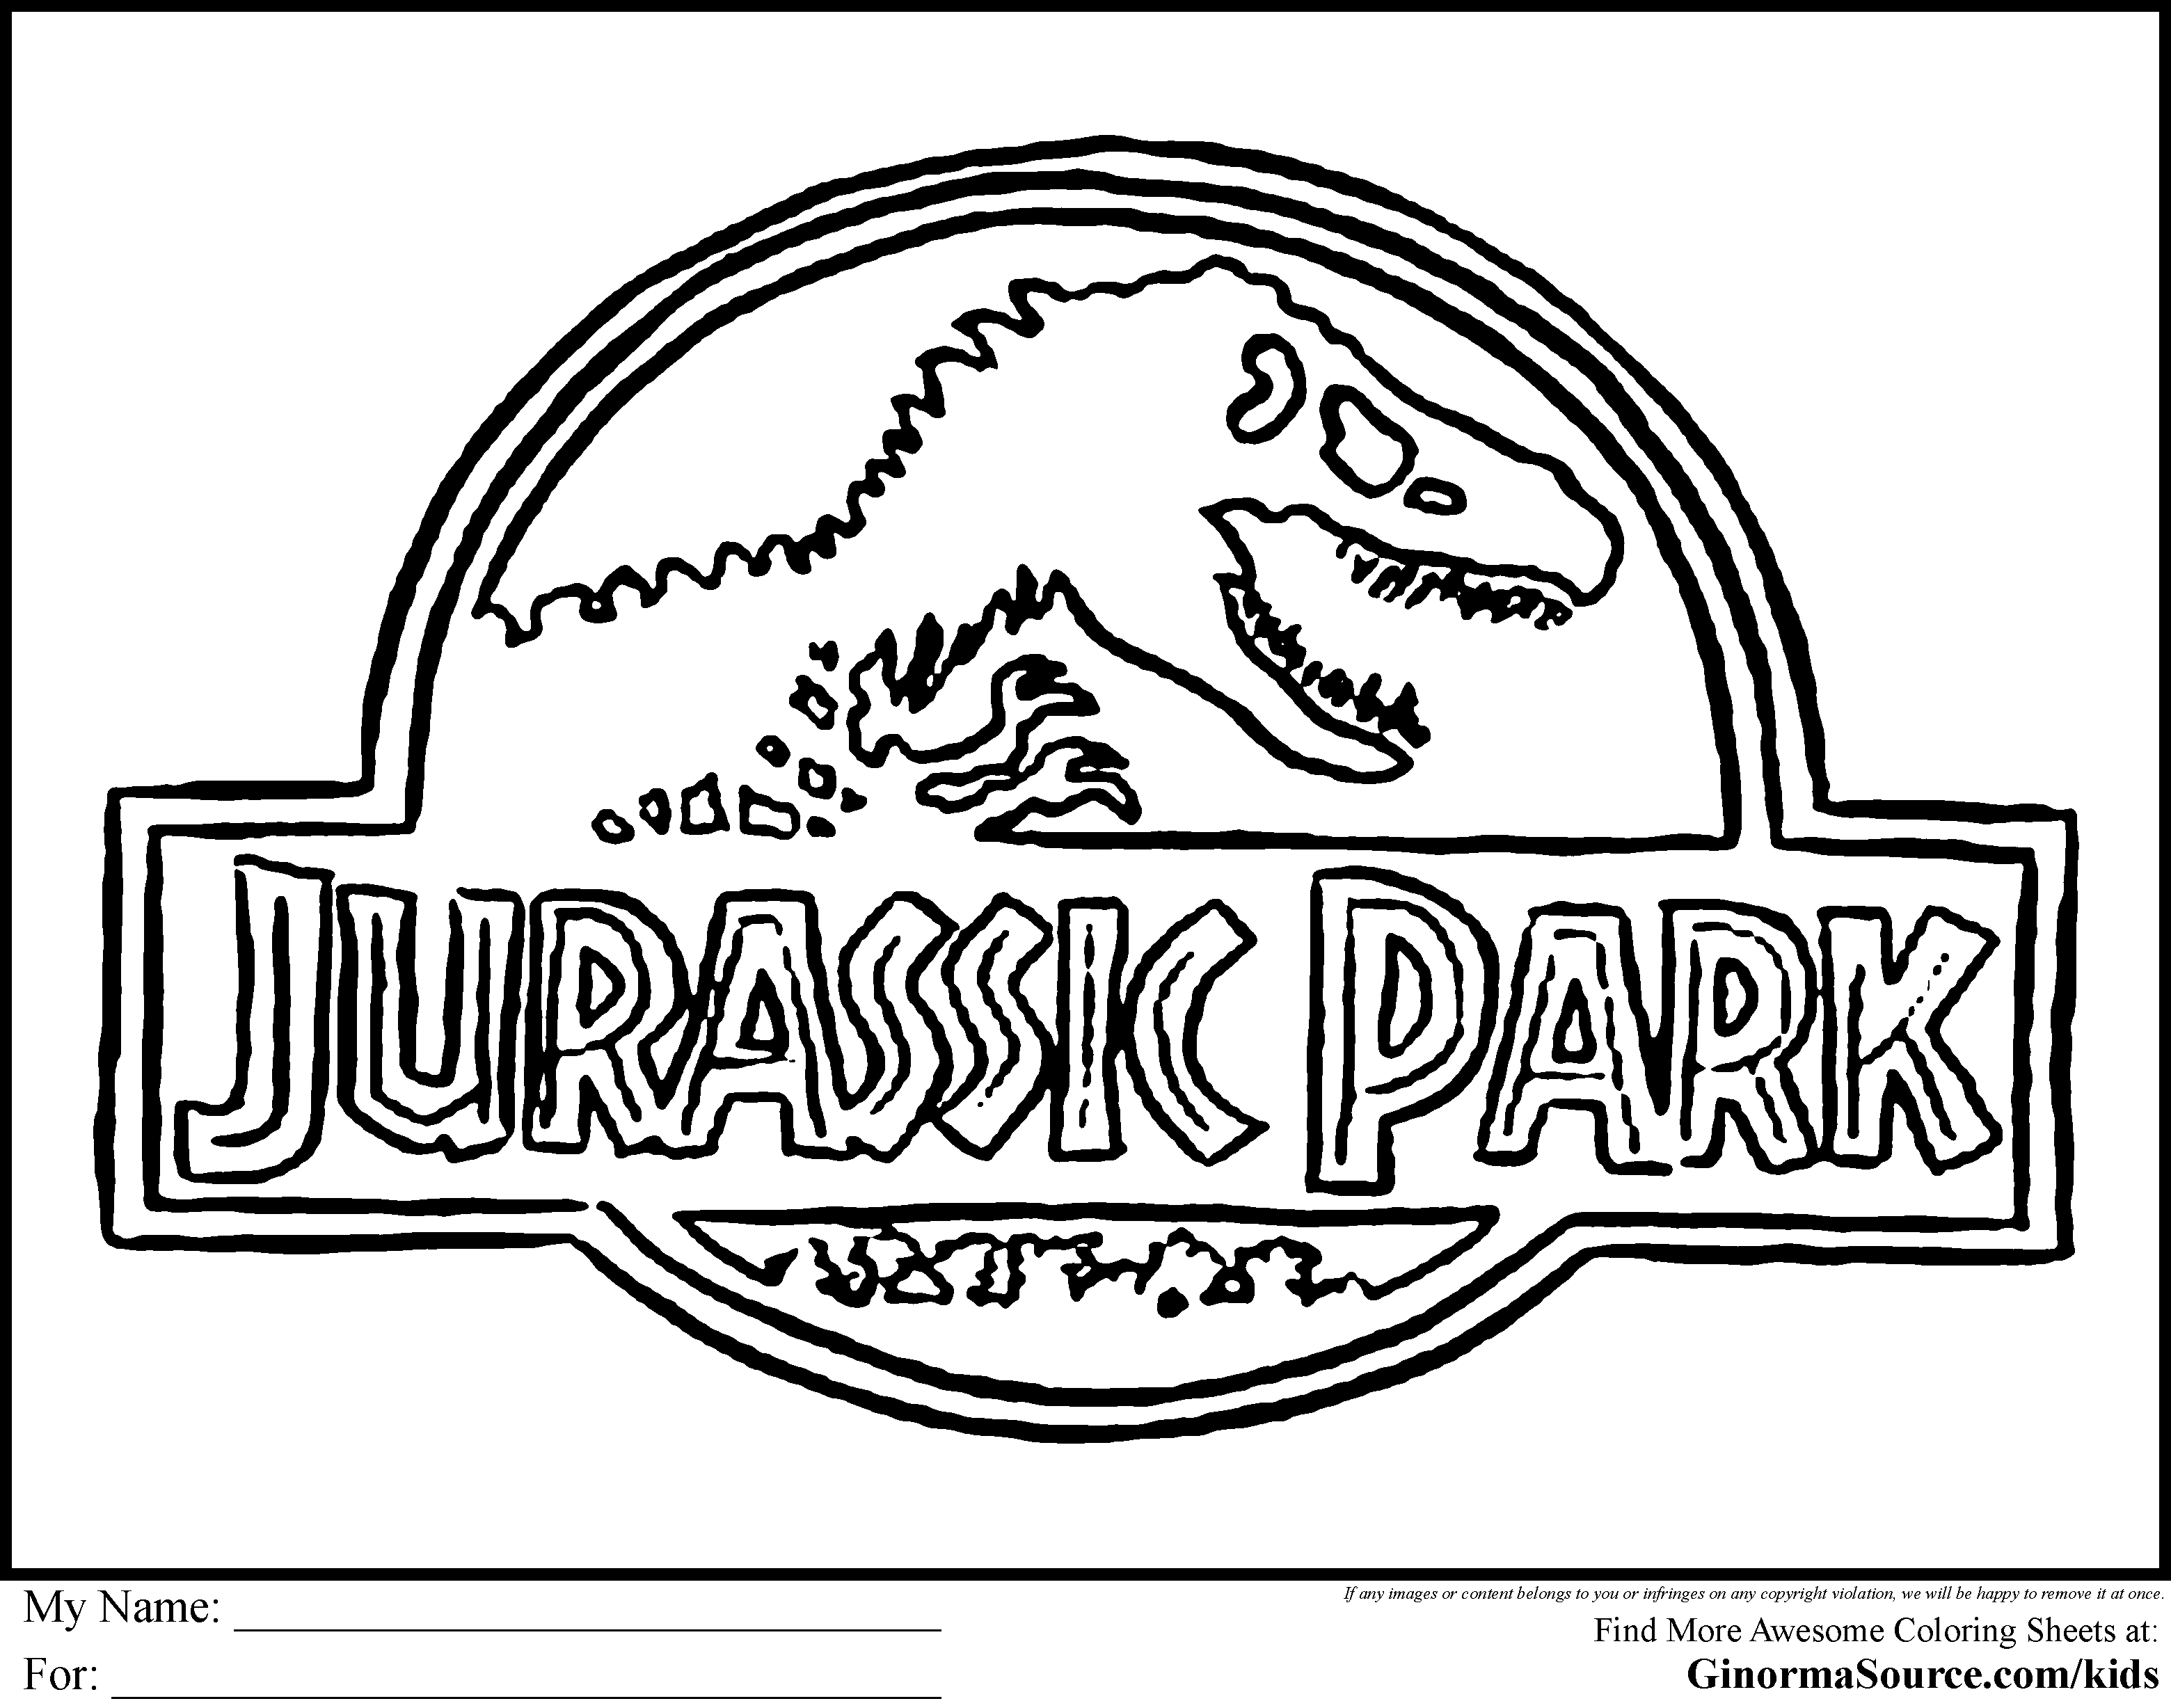 Jurassic Park Colouring Pages Google Search Dinosaur Coloring Pages Jurassic Park Jurassic Park Logo